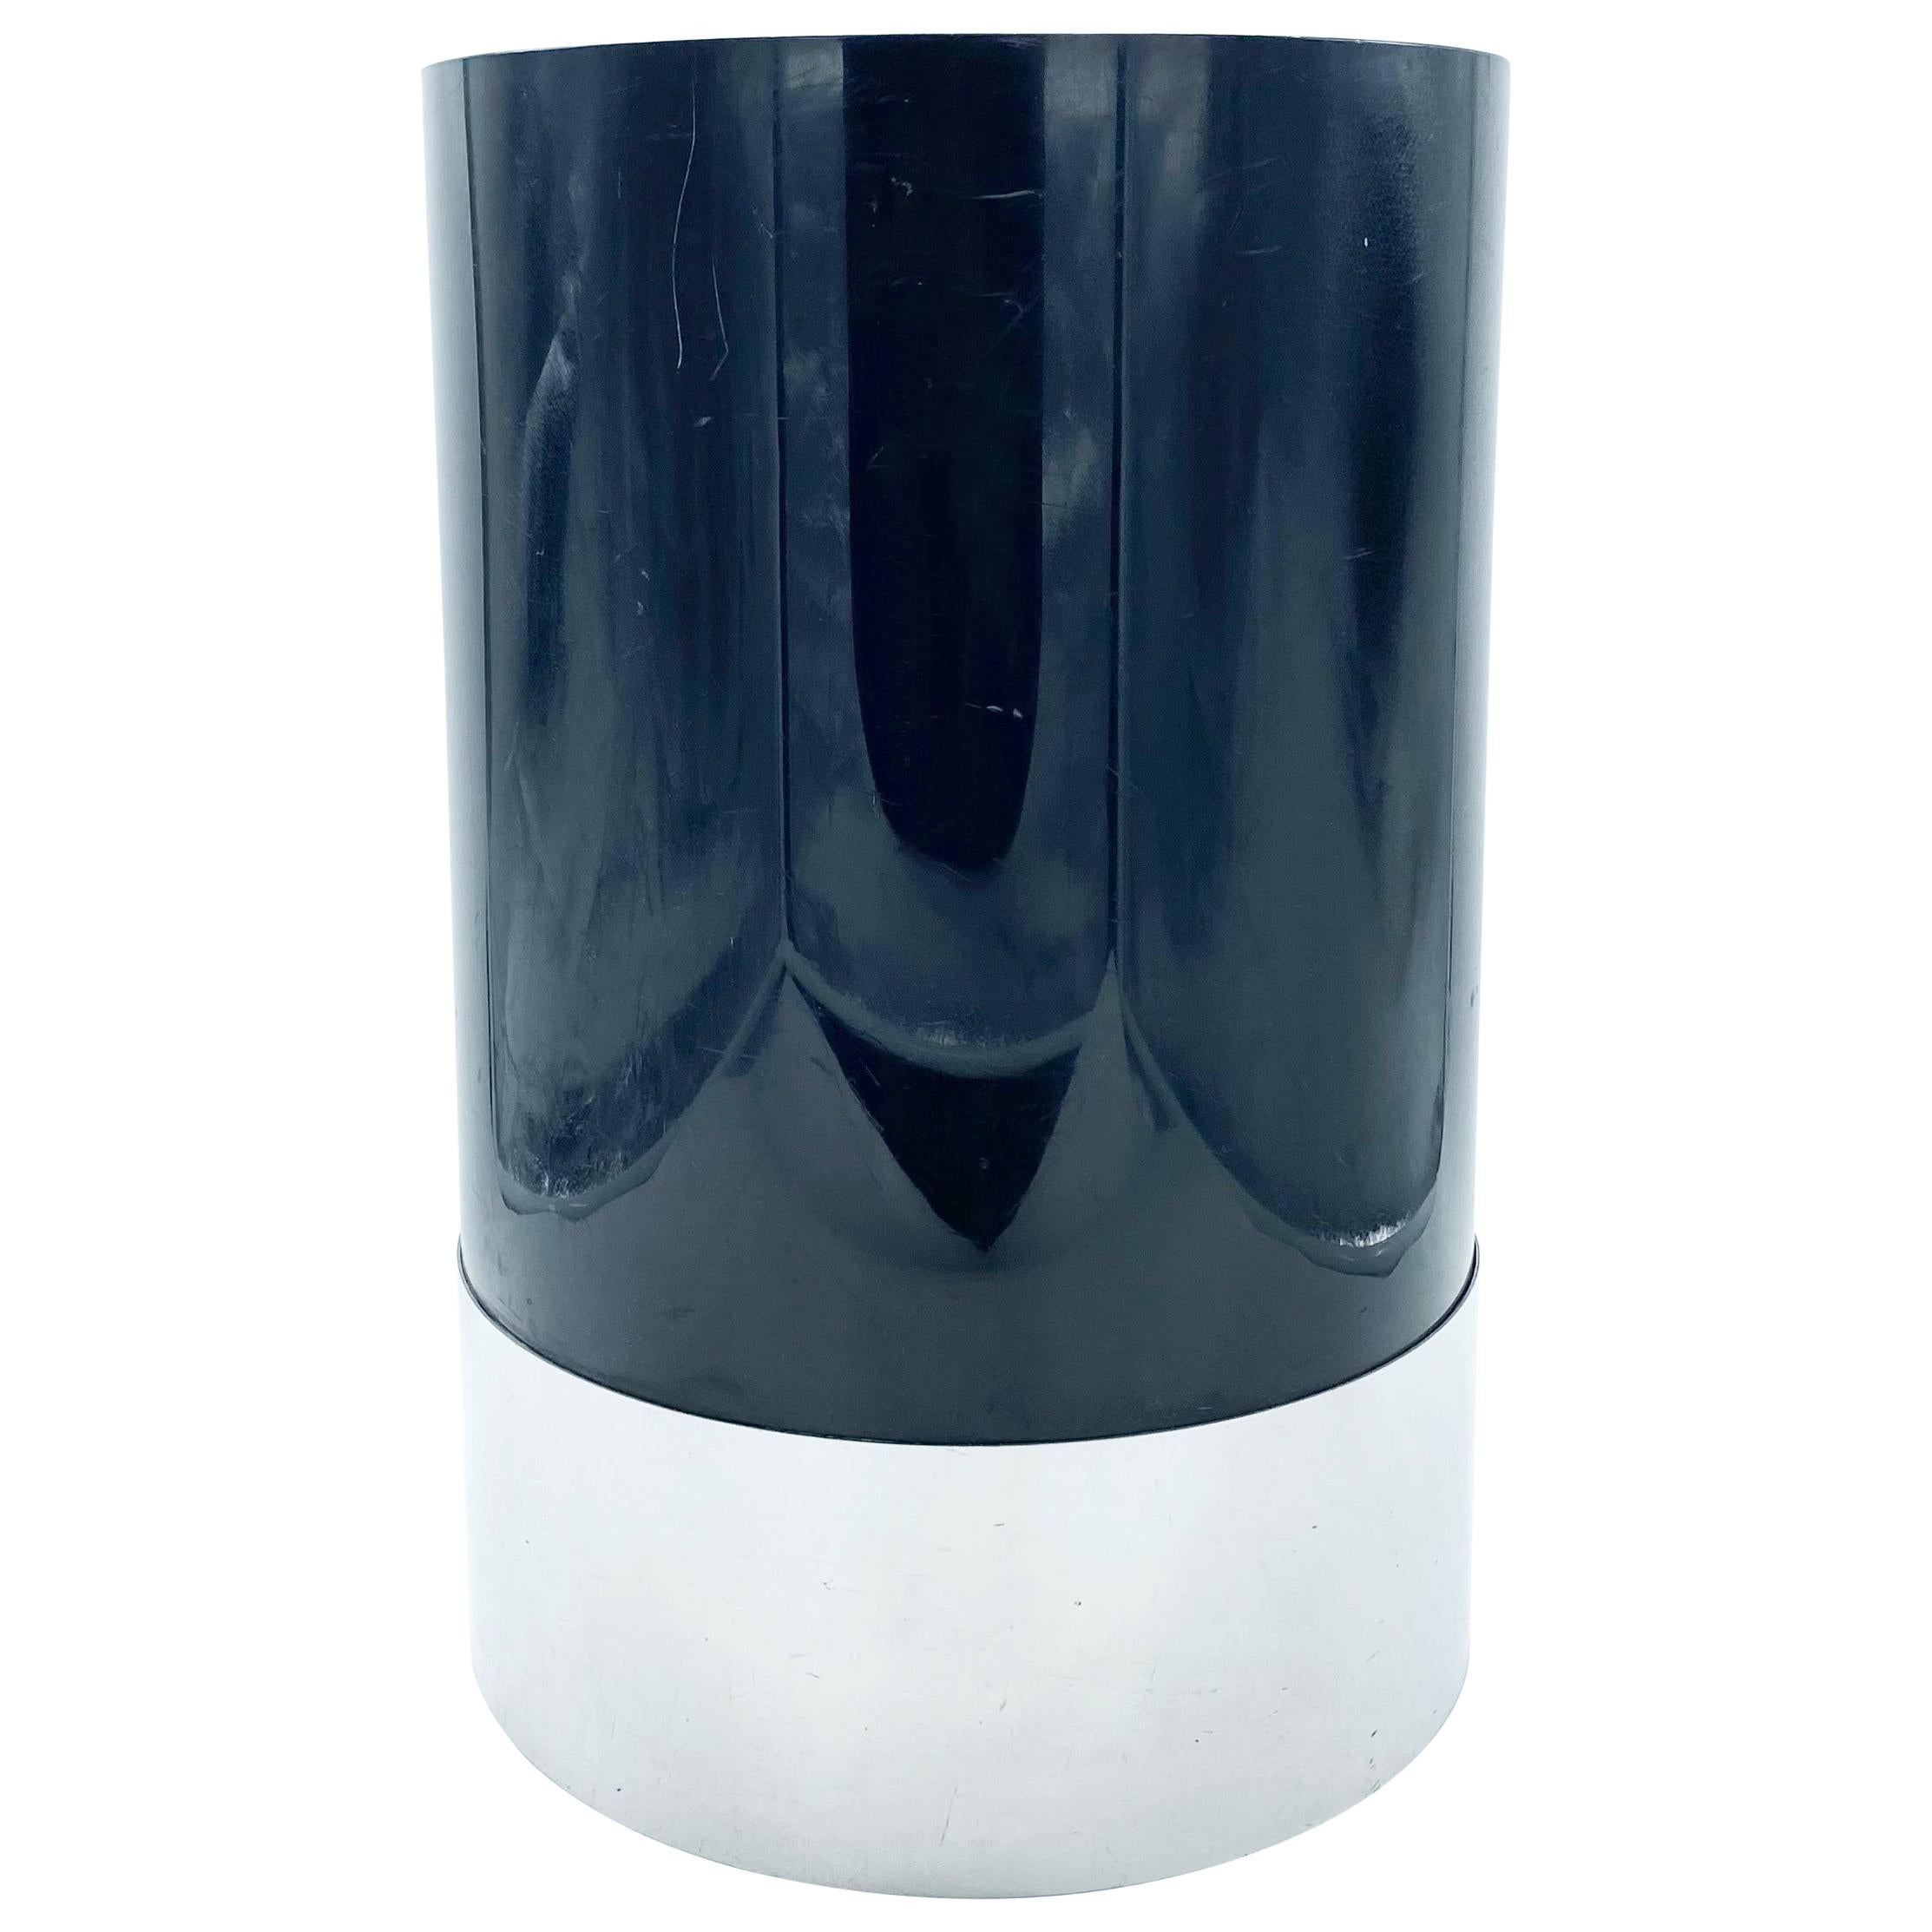 Kartell Black and Chrome Waste Paper Basket, Italy, 1970s